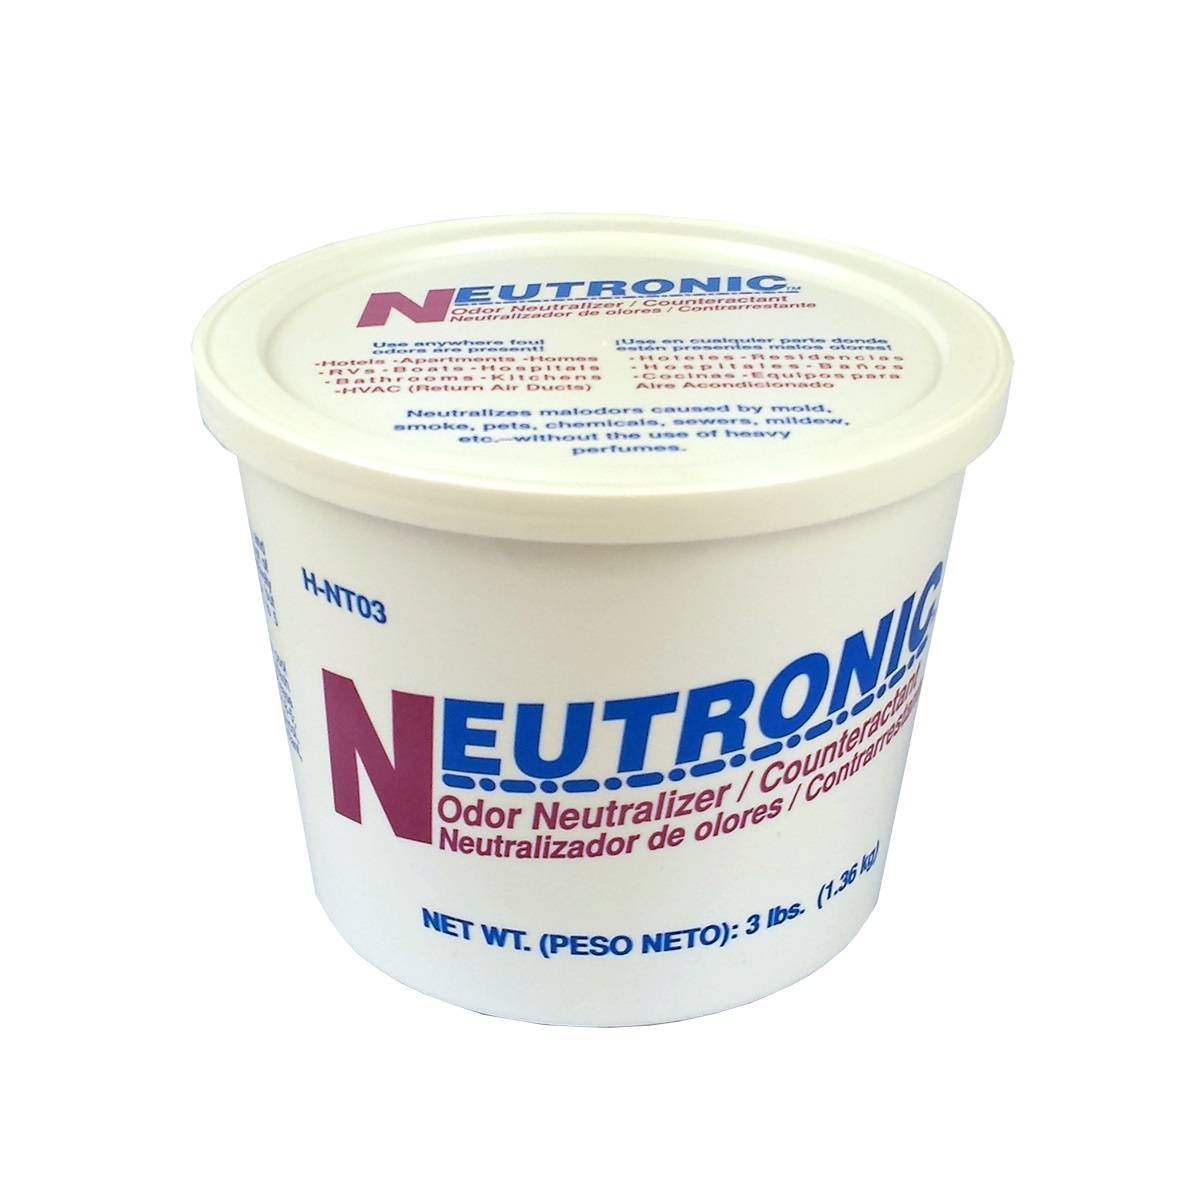 Neutronic (TM) Odor Neutralizer Gel